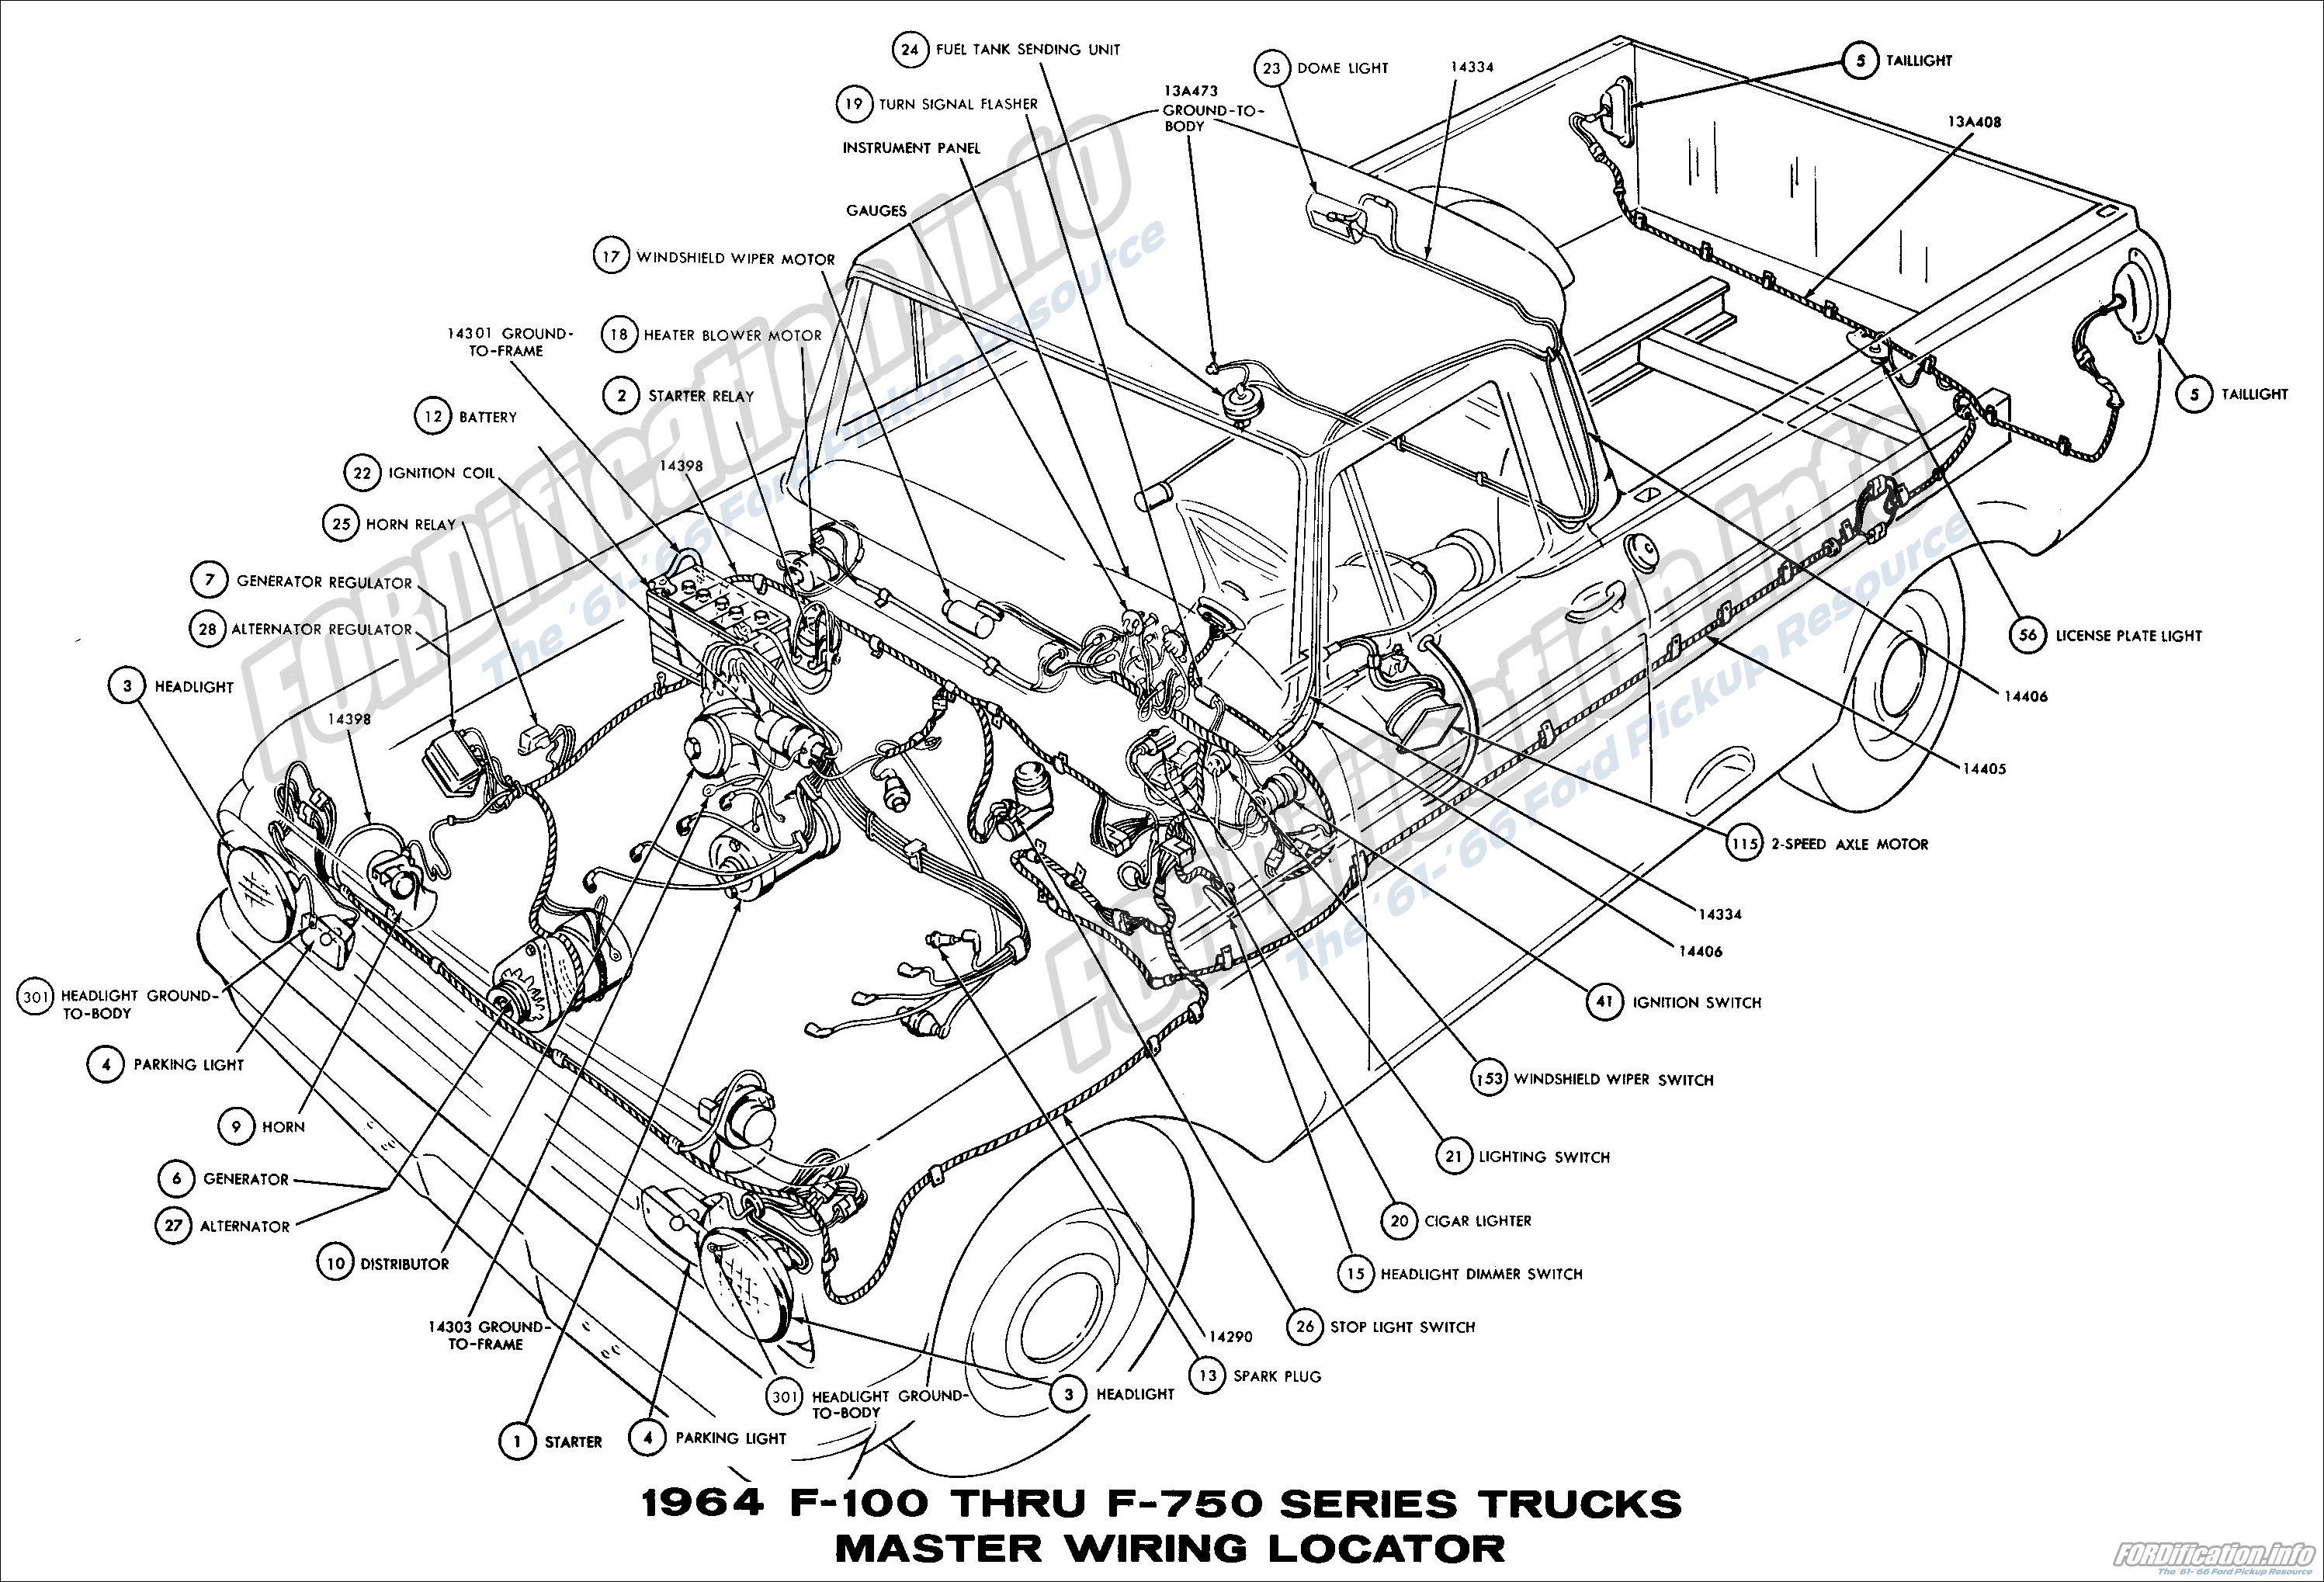 1964 ford truck wiring diagrams fordification info the 61 66 rh fordification info Ford Bronco Wiring Diagram Ford Electrical Wiring Diagrams